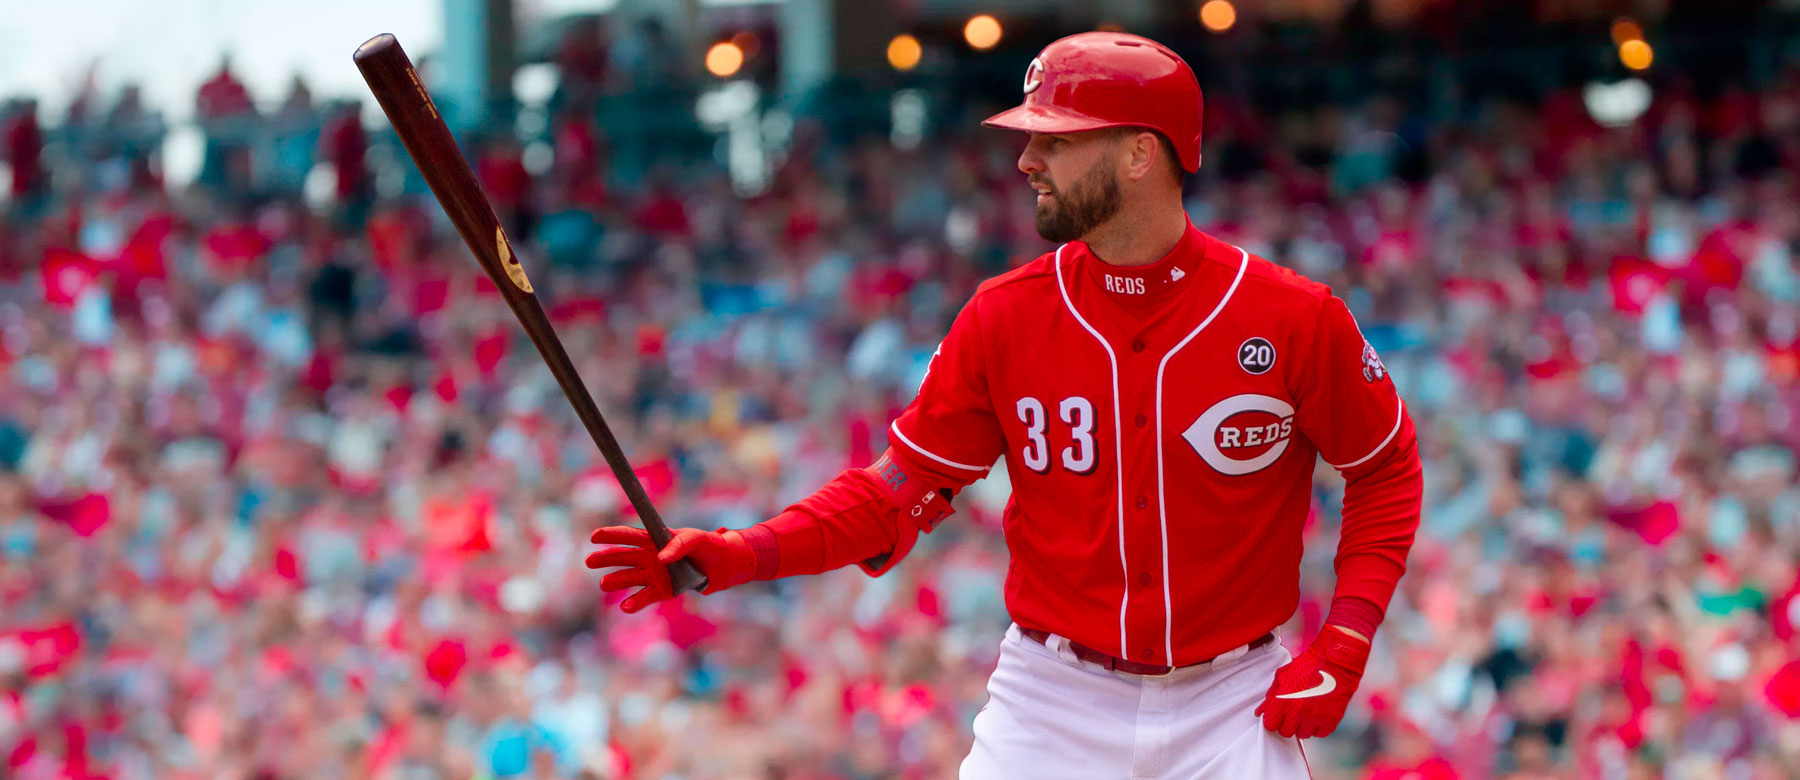 Looking back at the 2019 Reds: The Jesse Winker Edition